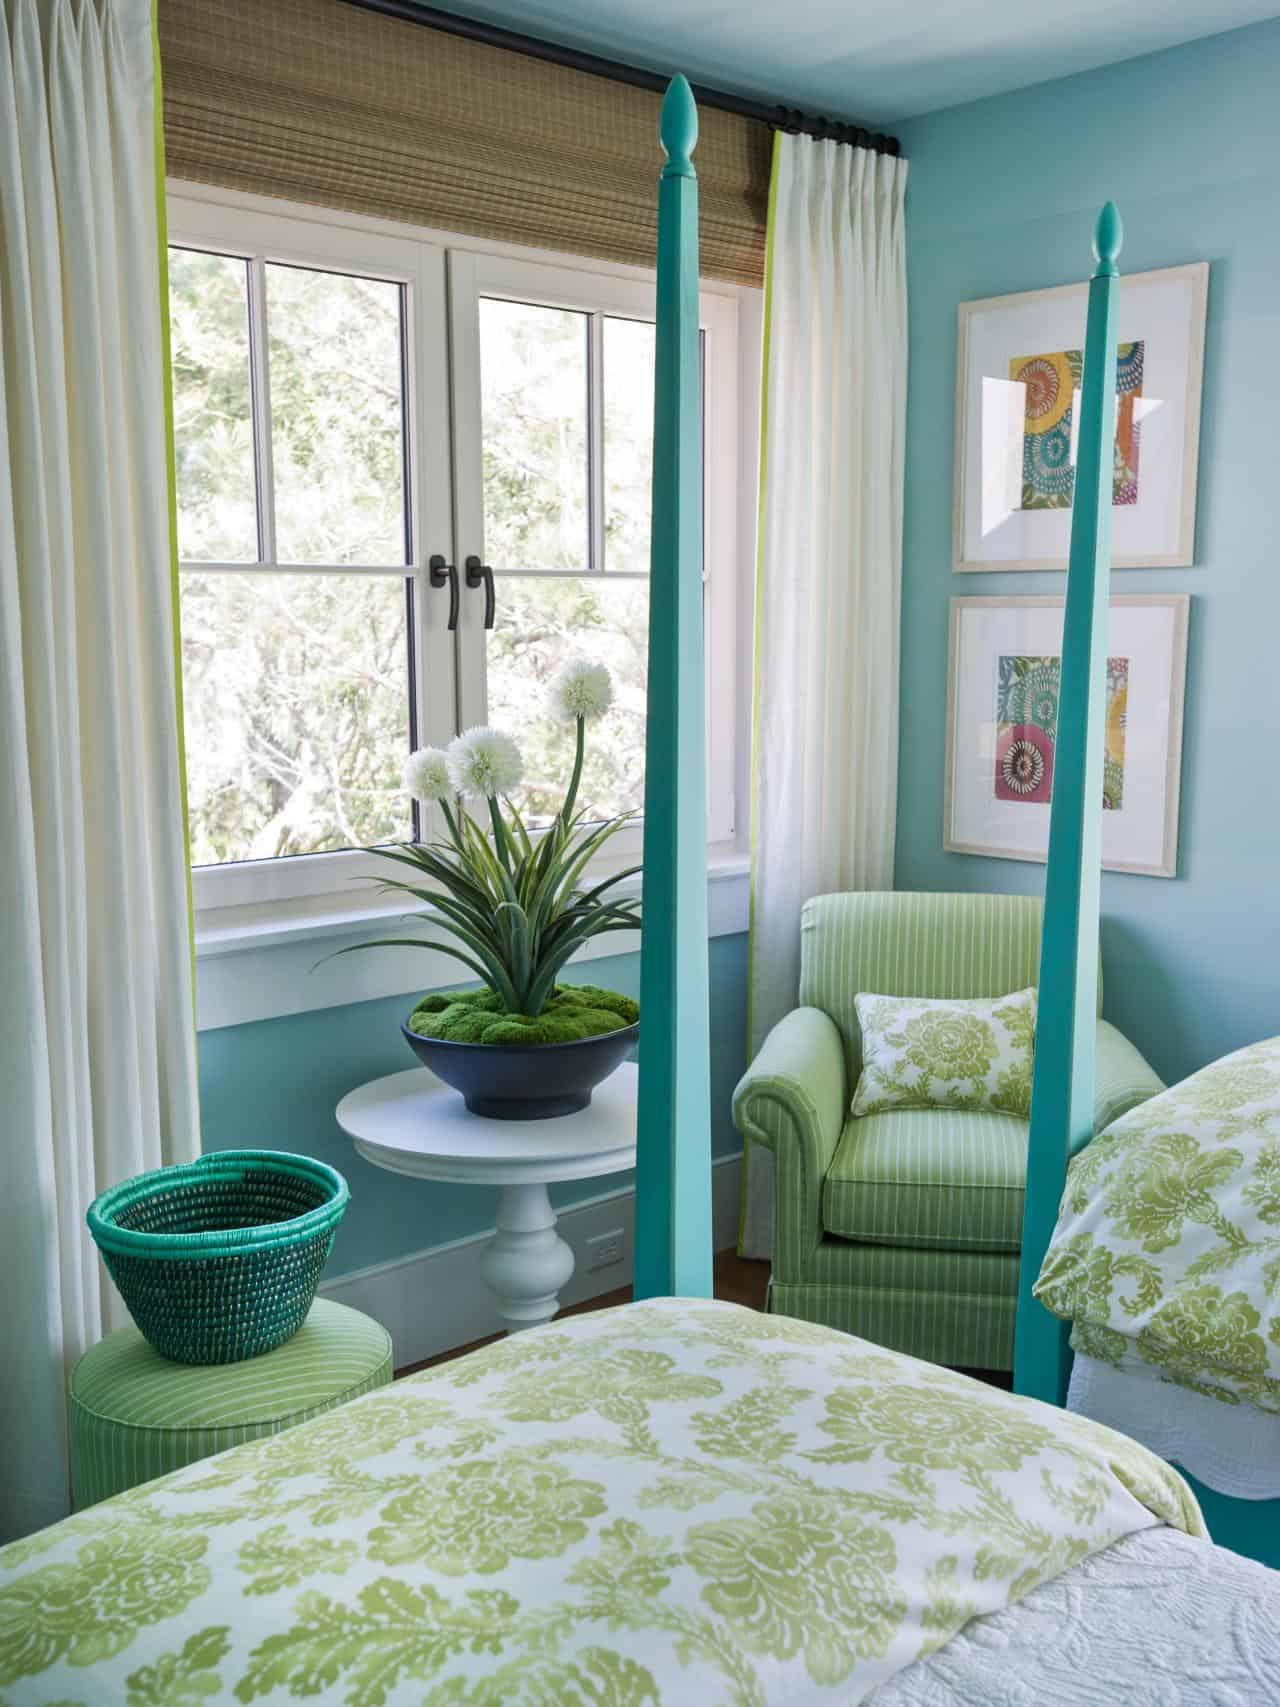 Green Bedroom Ideas That Will Refresh The Space